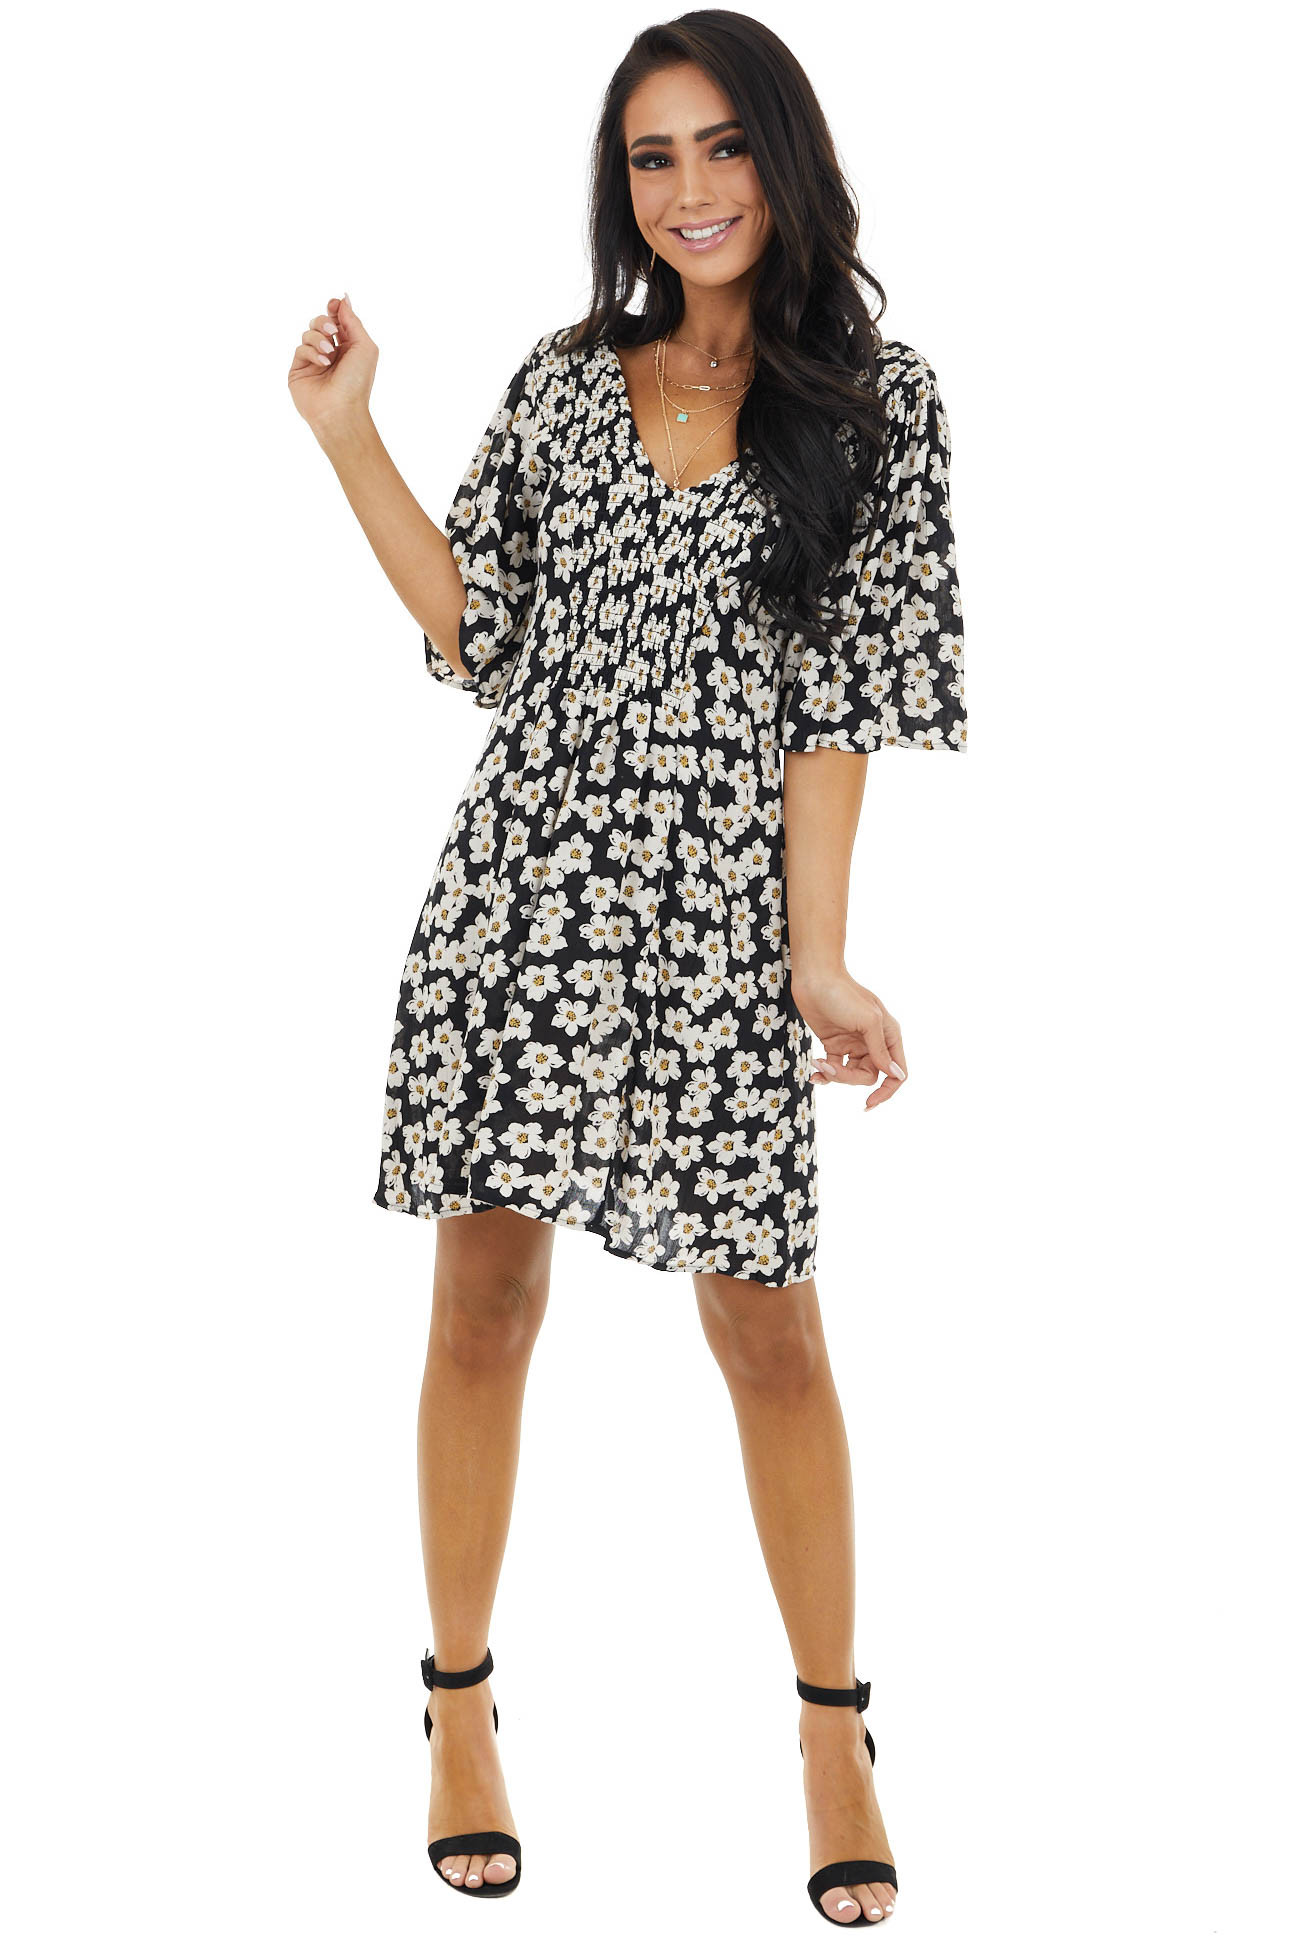 Black Floral Print Smocked Mini Dress with V Neckline